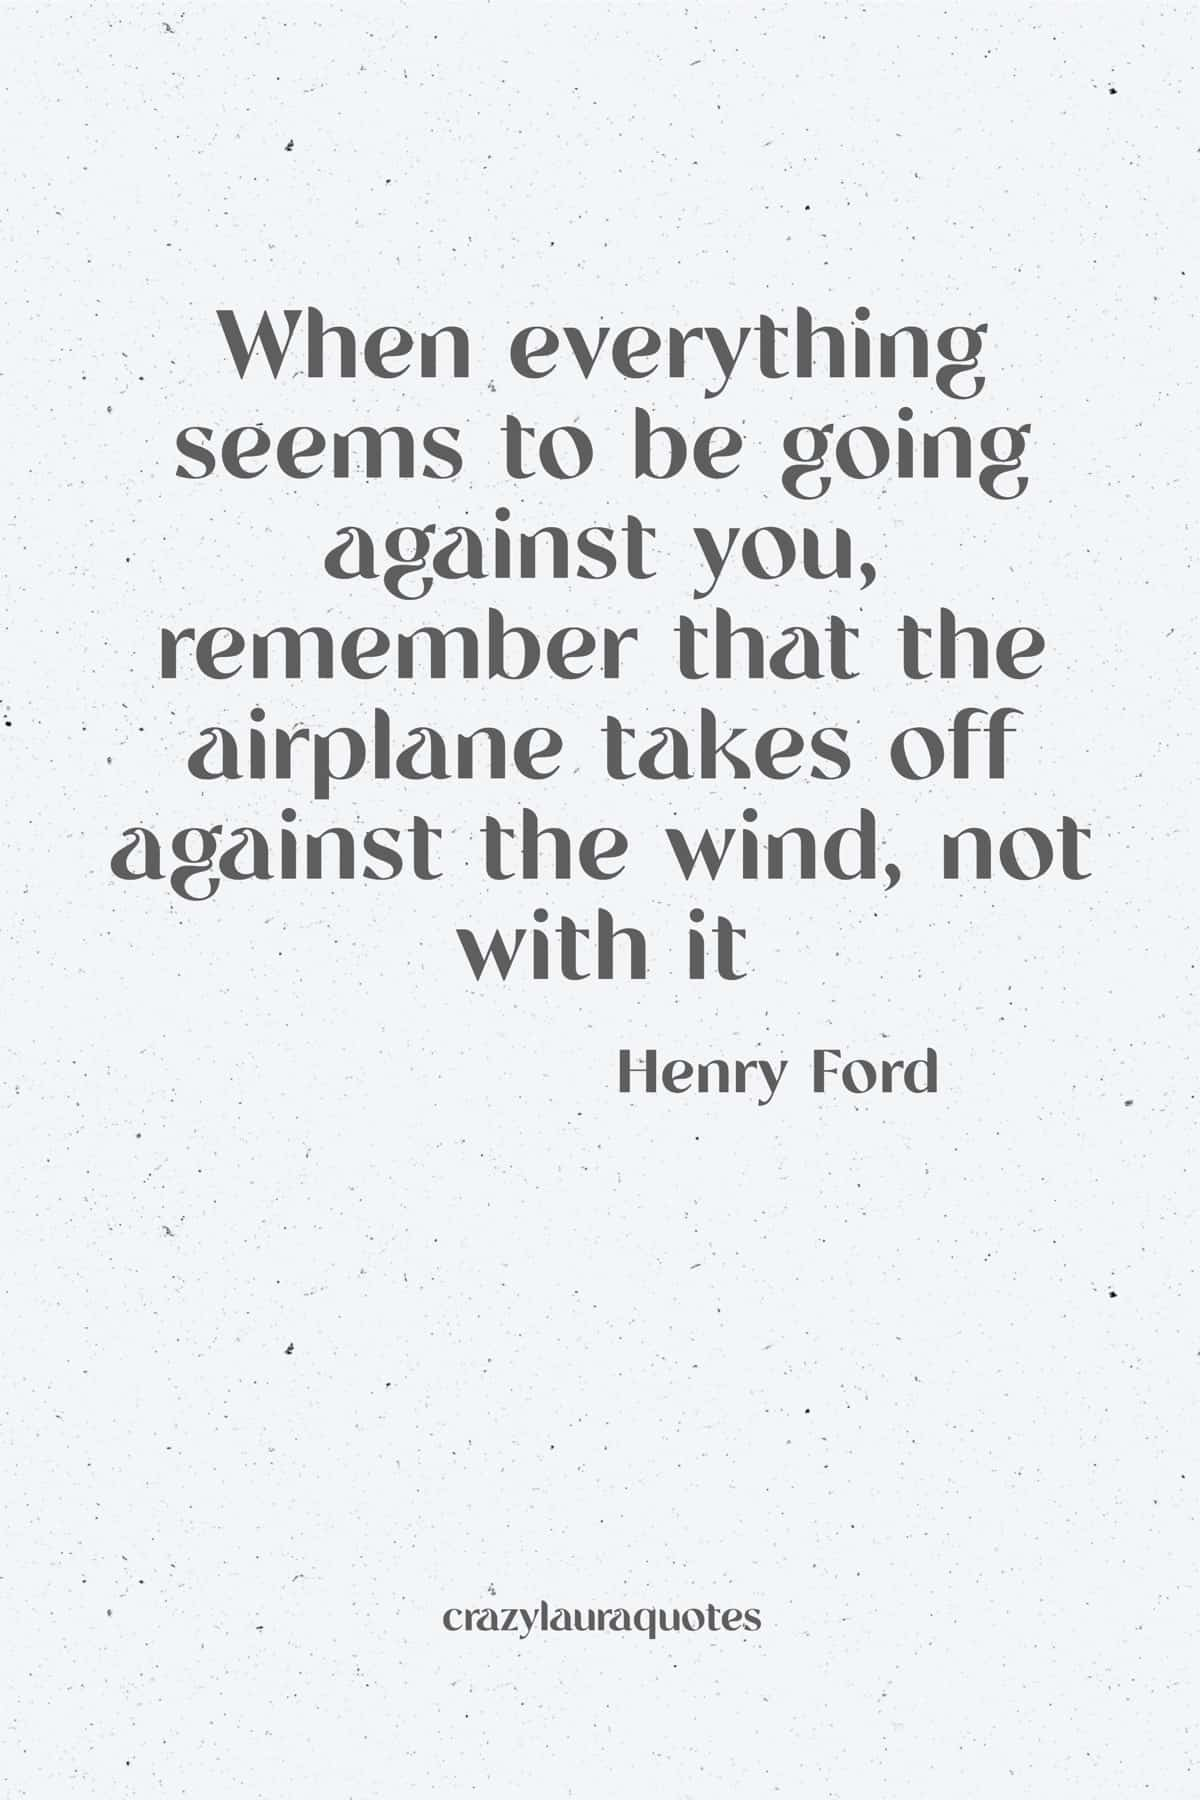 henry ford motivational quote to start the week